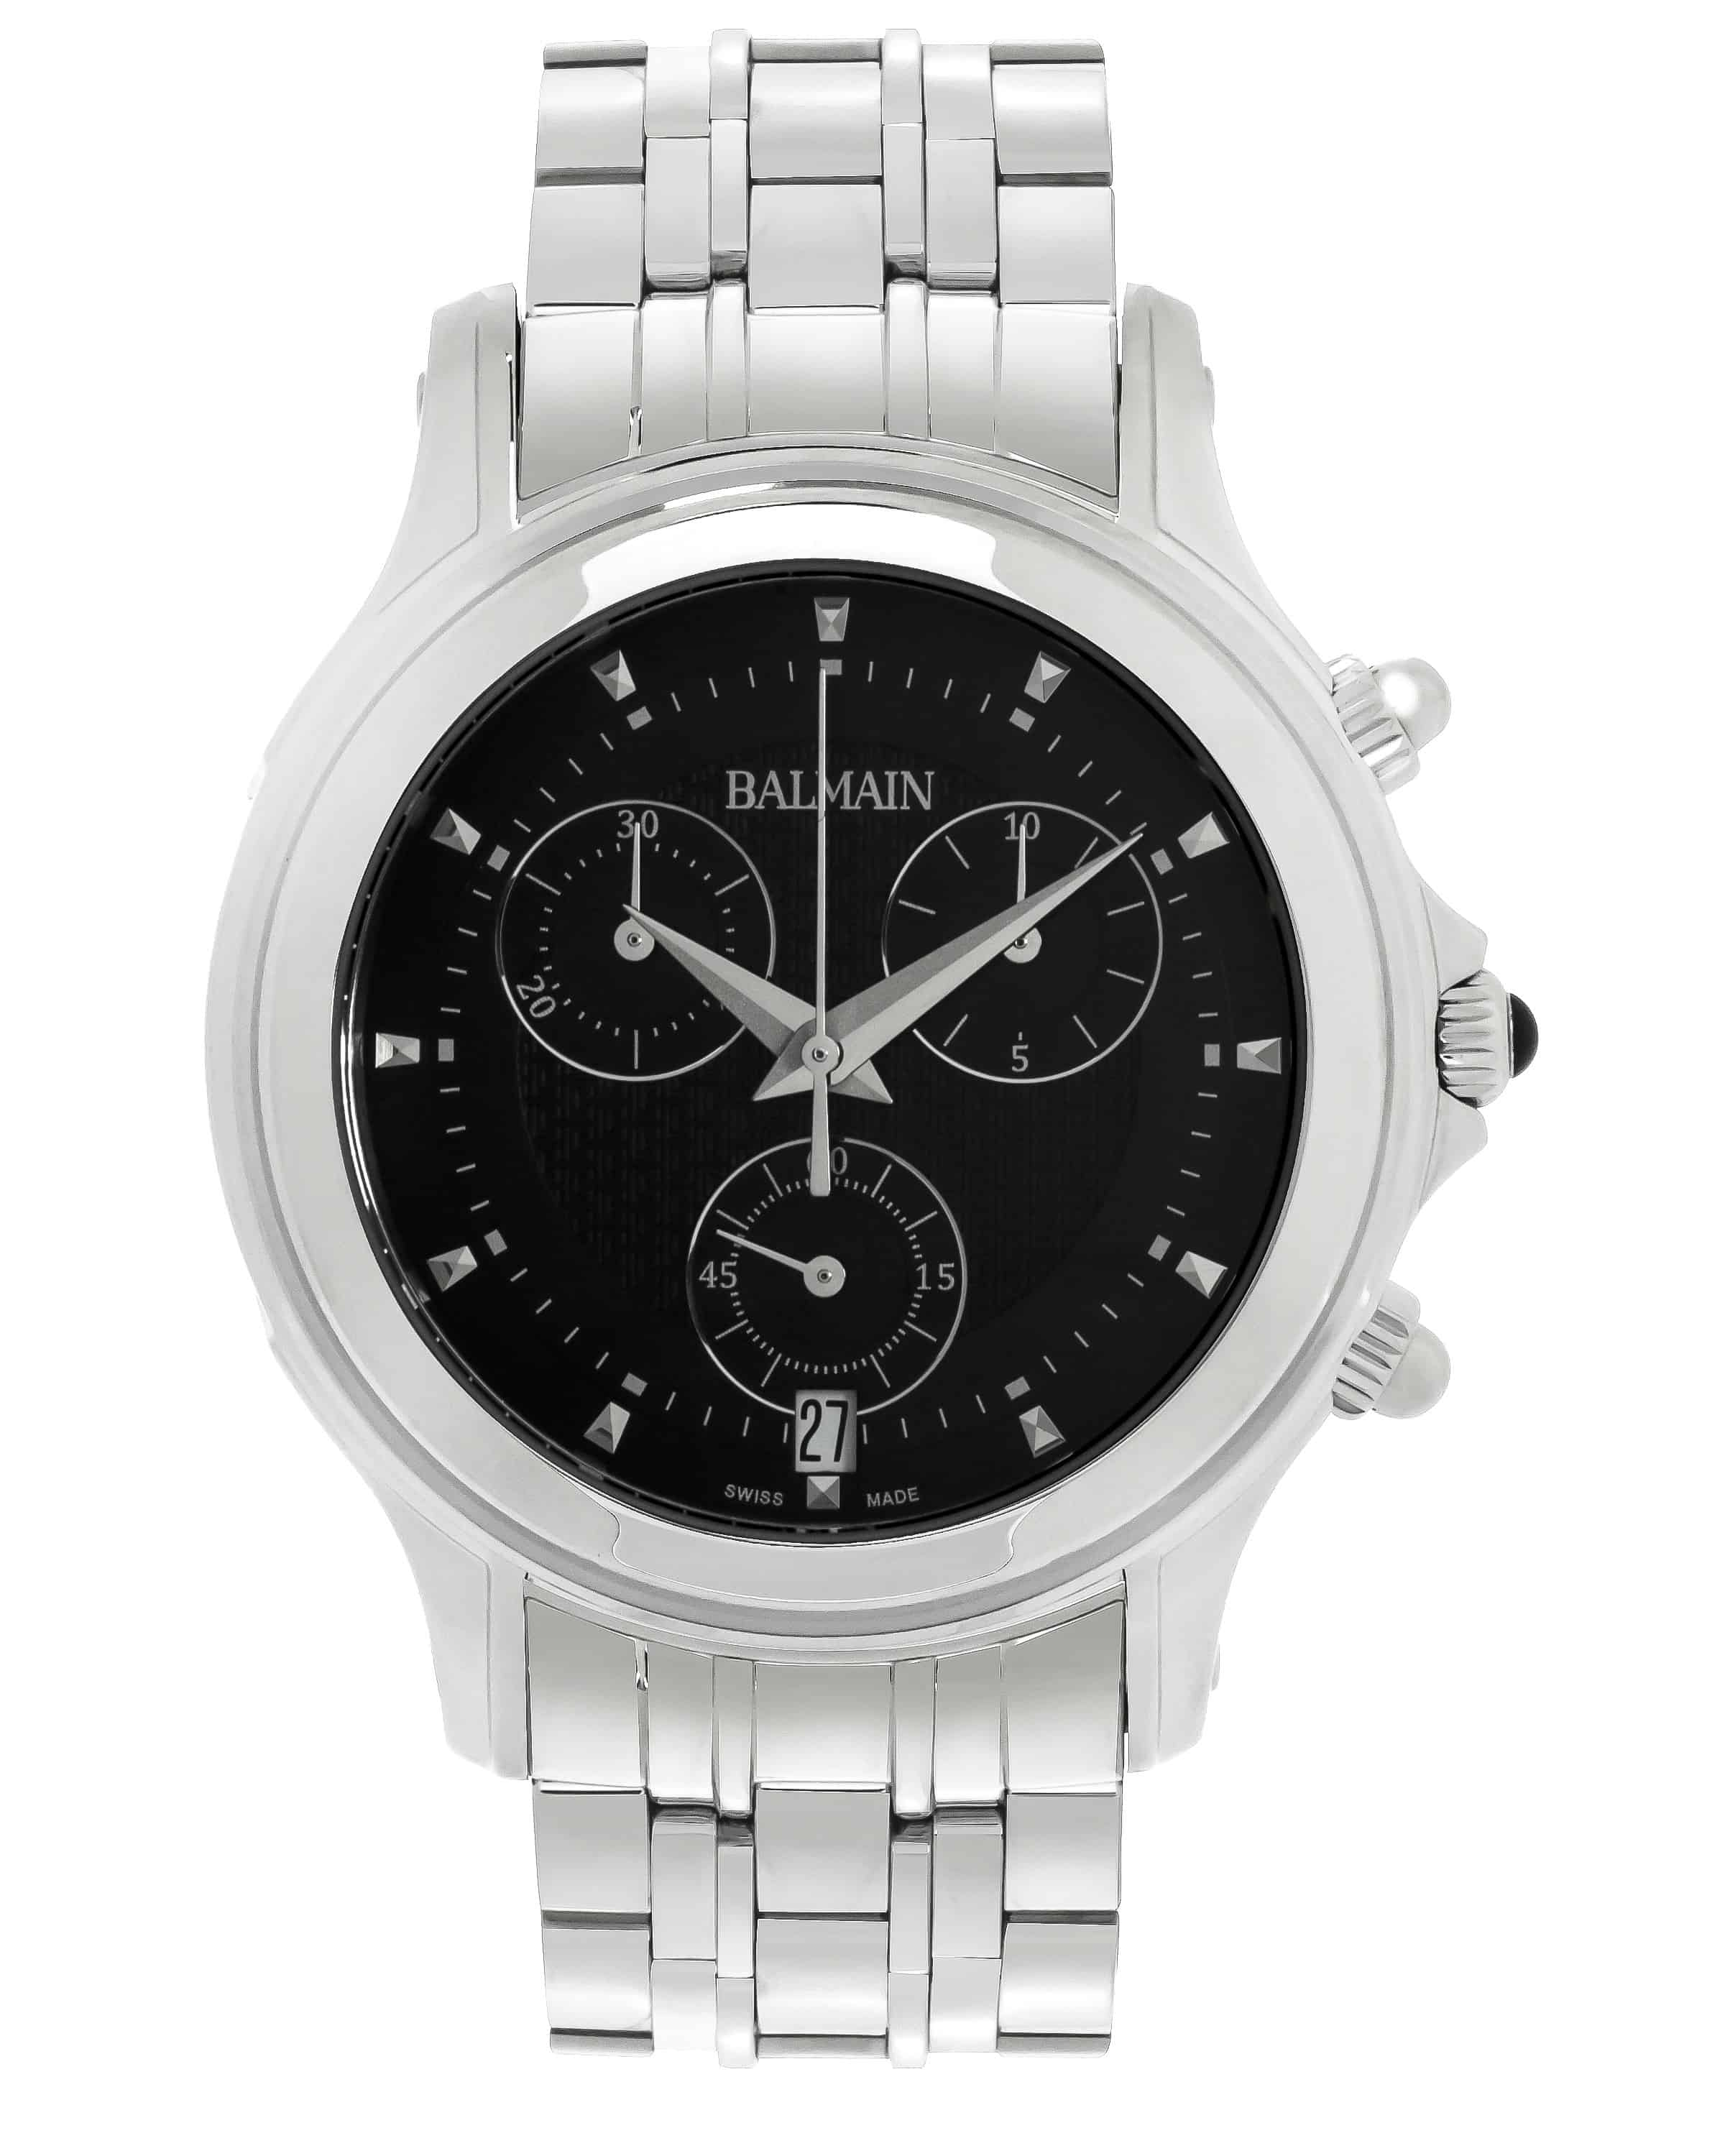 Balmain Eria Chrono  Stainless Steel Quartz Men's Watch B68613366